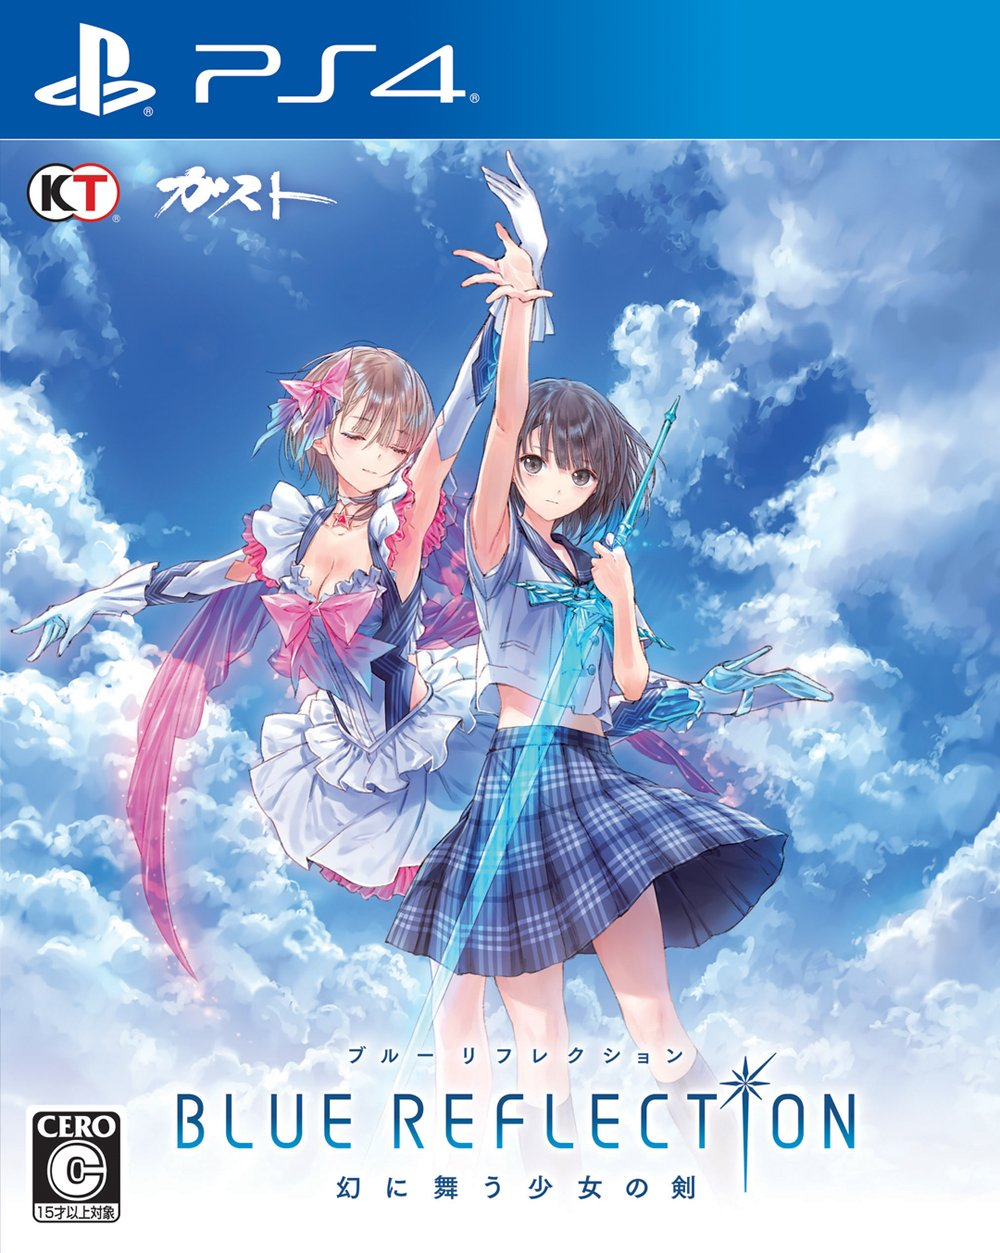 BLUE REFLECTION 幻に舞う少女の剣 (初回封入特典(オリジナルテーマ&ゲーム内コンテンツ「フリスペ! 」着せ替えテーマ & 制服がスクール水着に なる ダウンロードシリアル) 同梱)